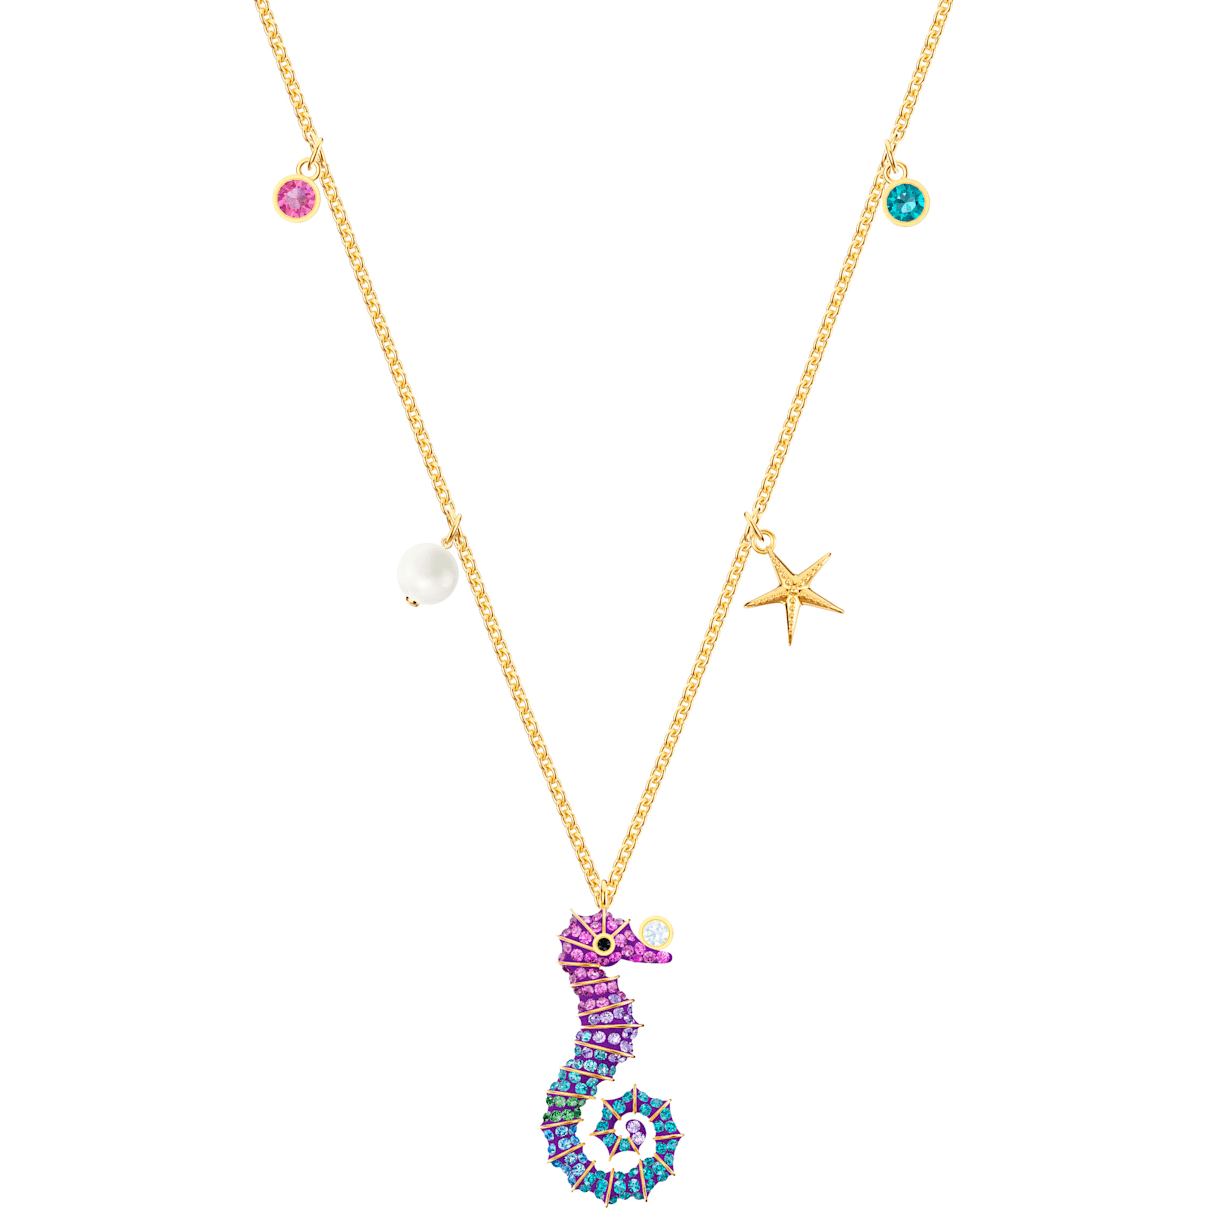 Swarovski Ocean Seahorse Pendant, Multi-colored, Gold-tone plated